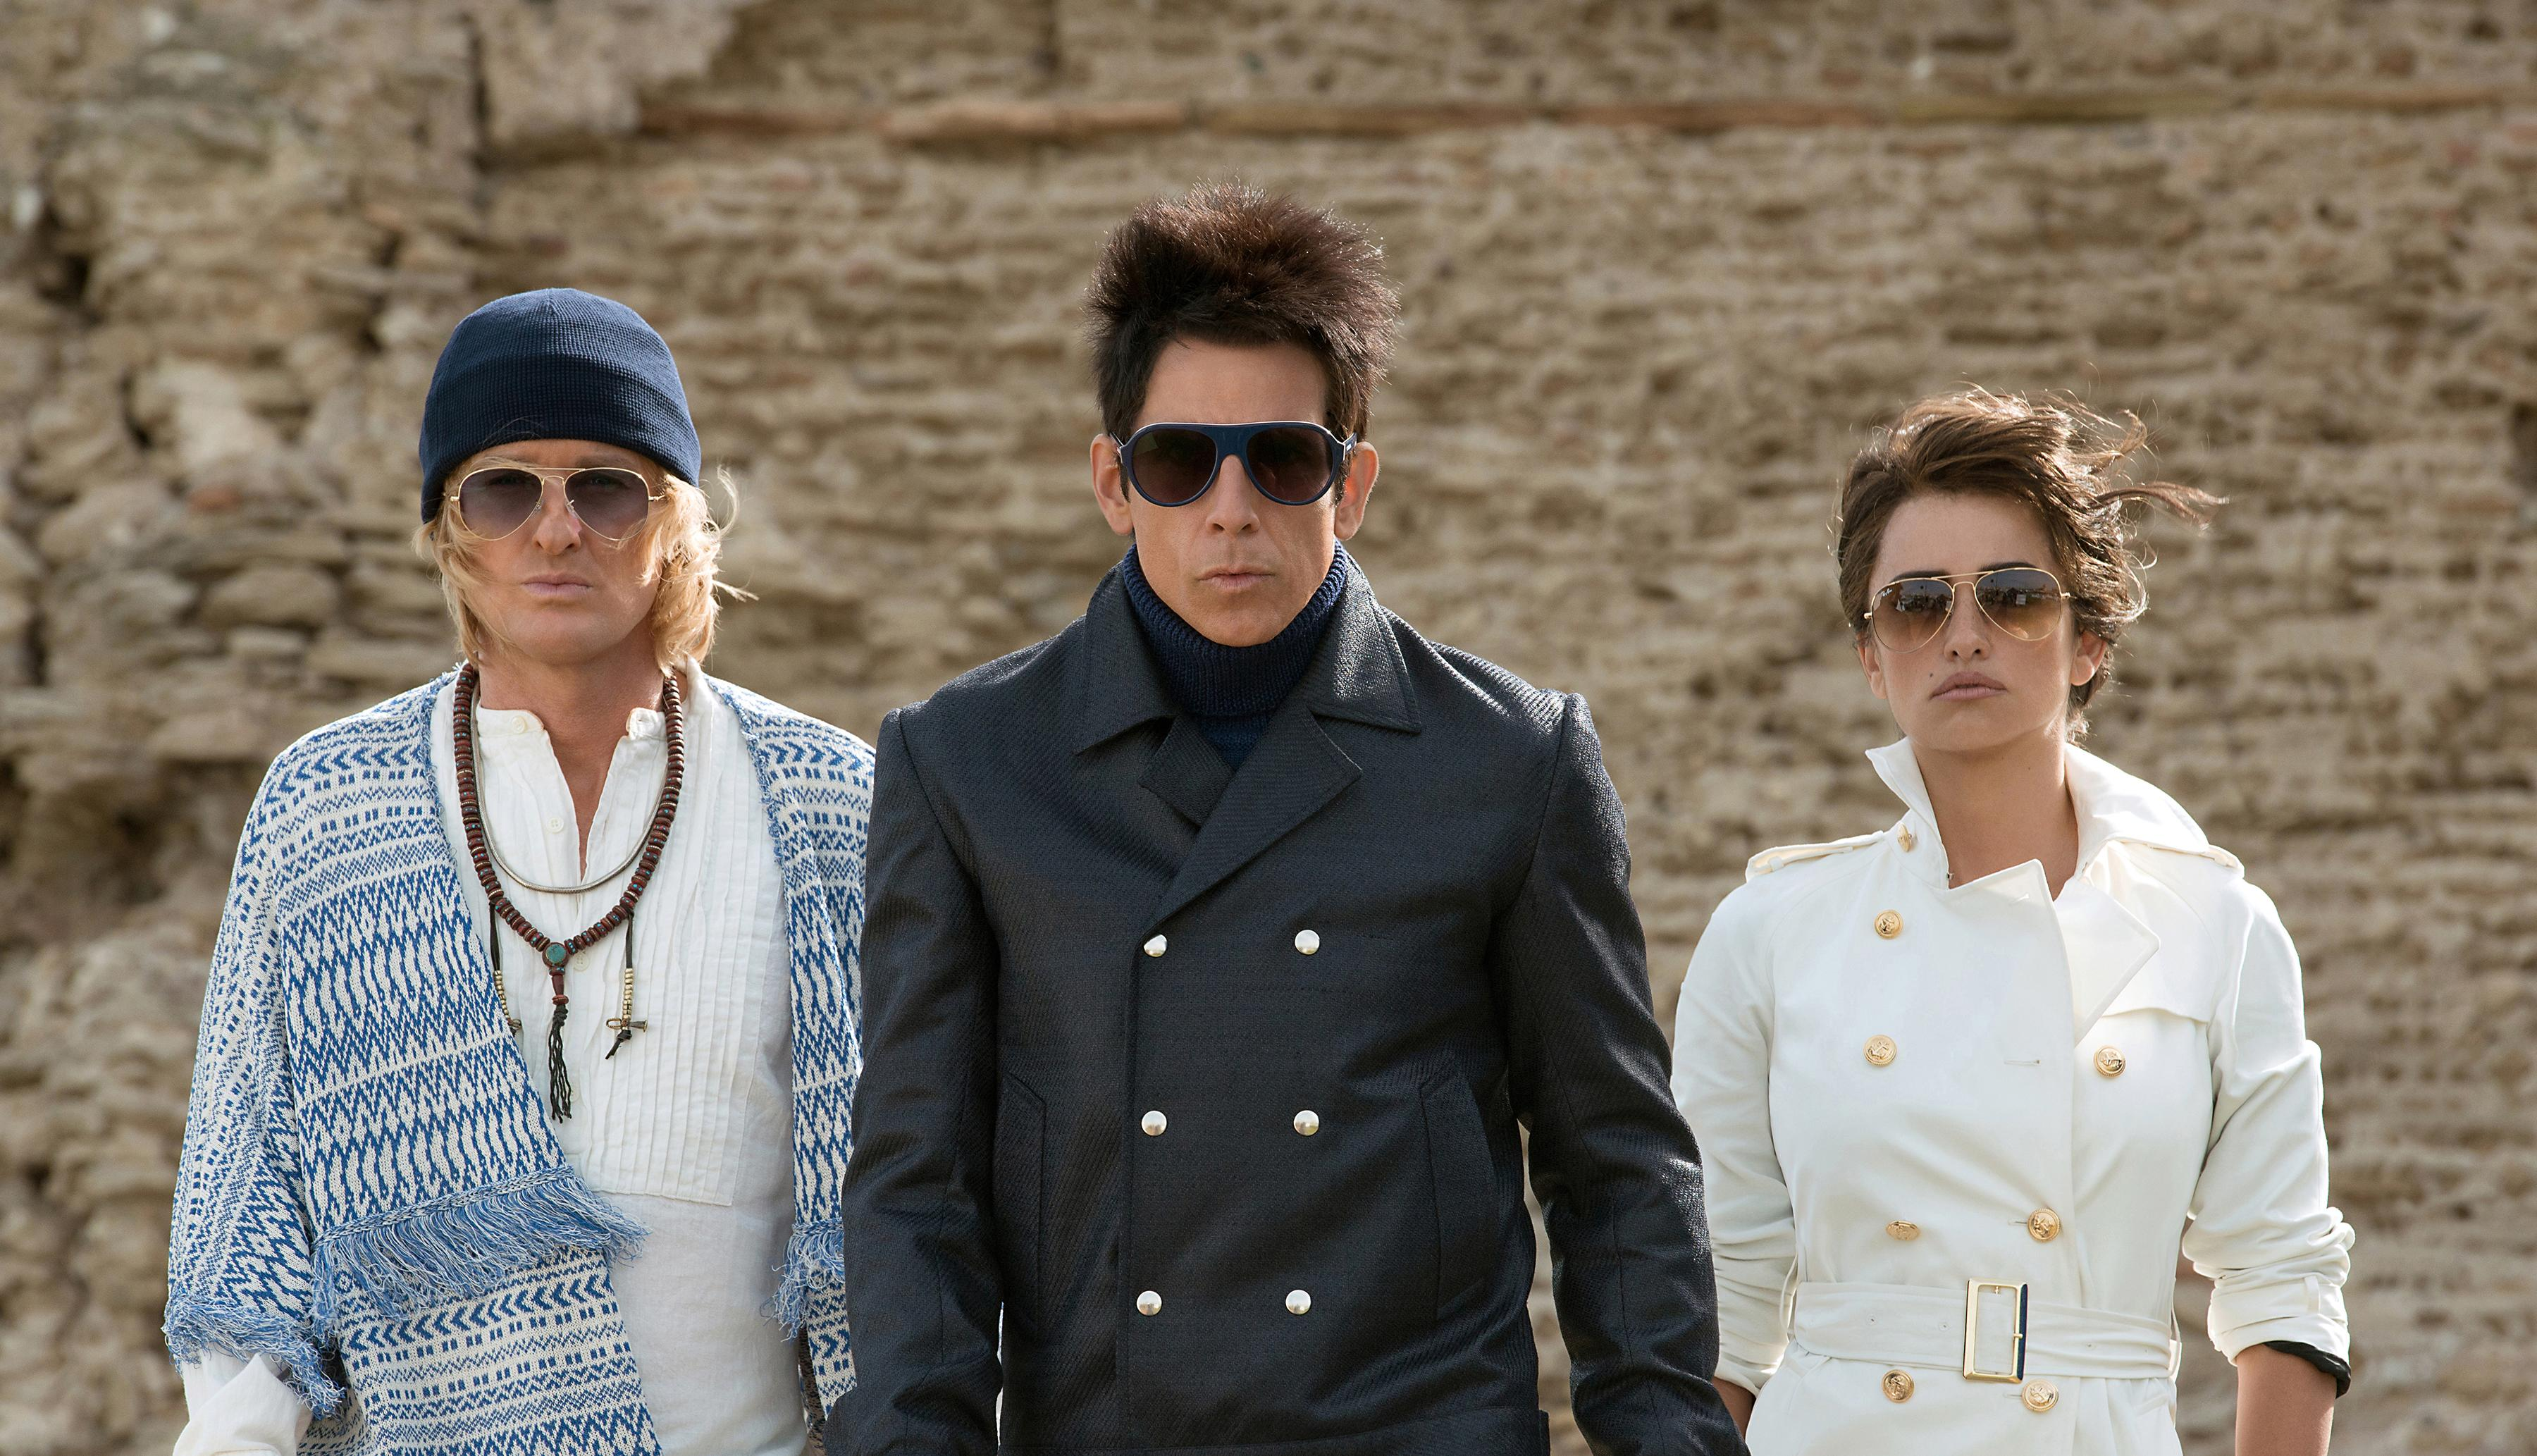 'Zoolander 2' Trailer Scores Record Traffic For A Comedy Film In Its First Week